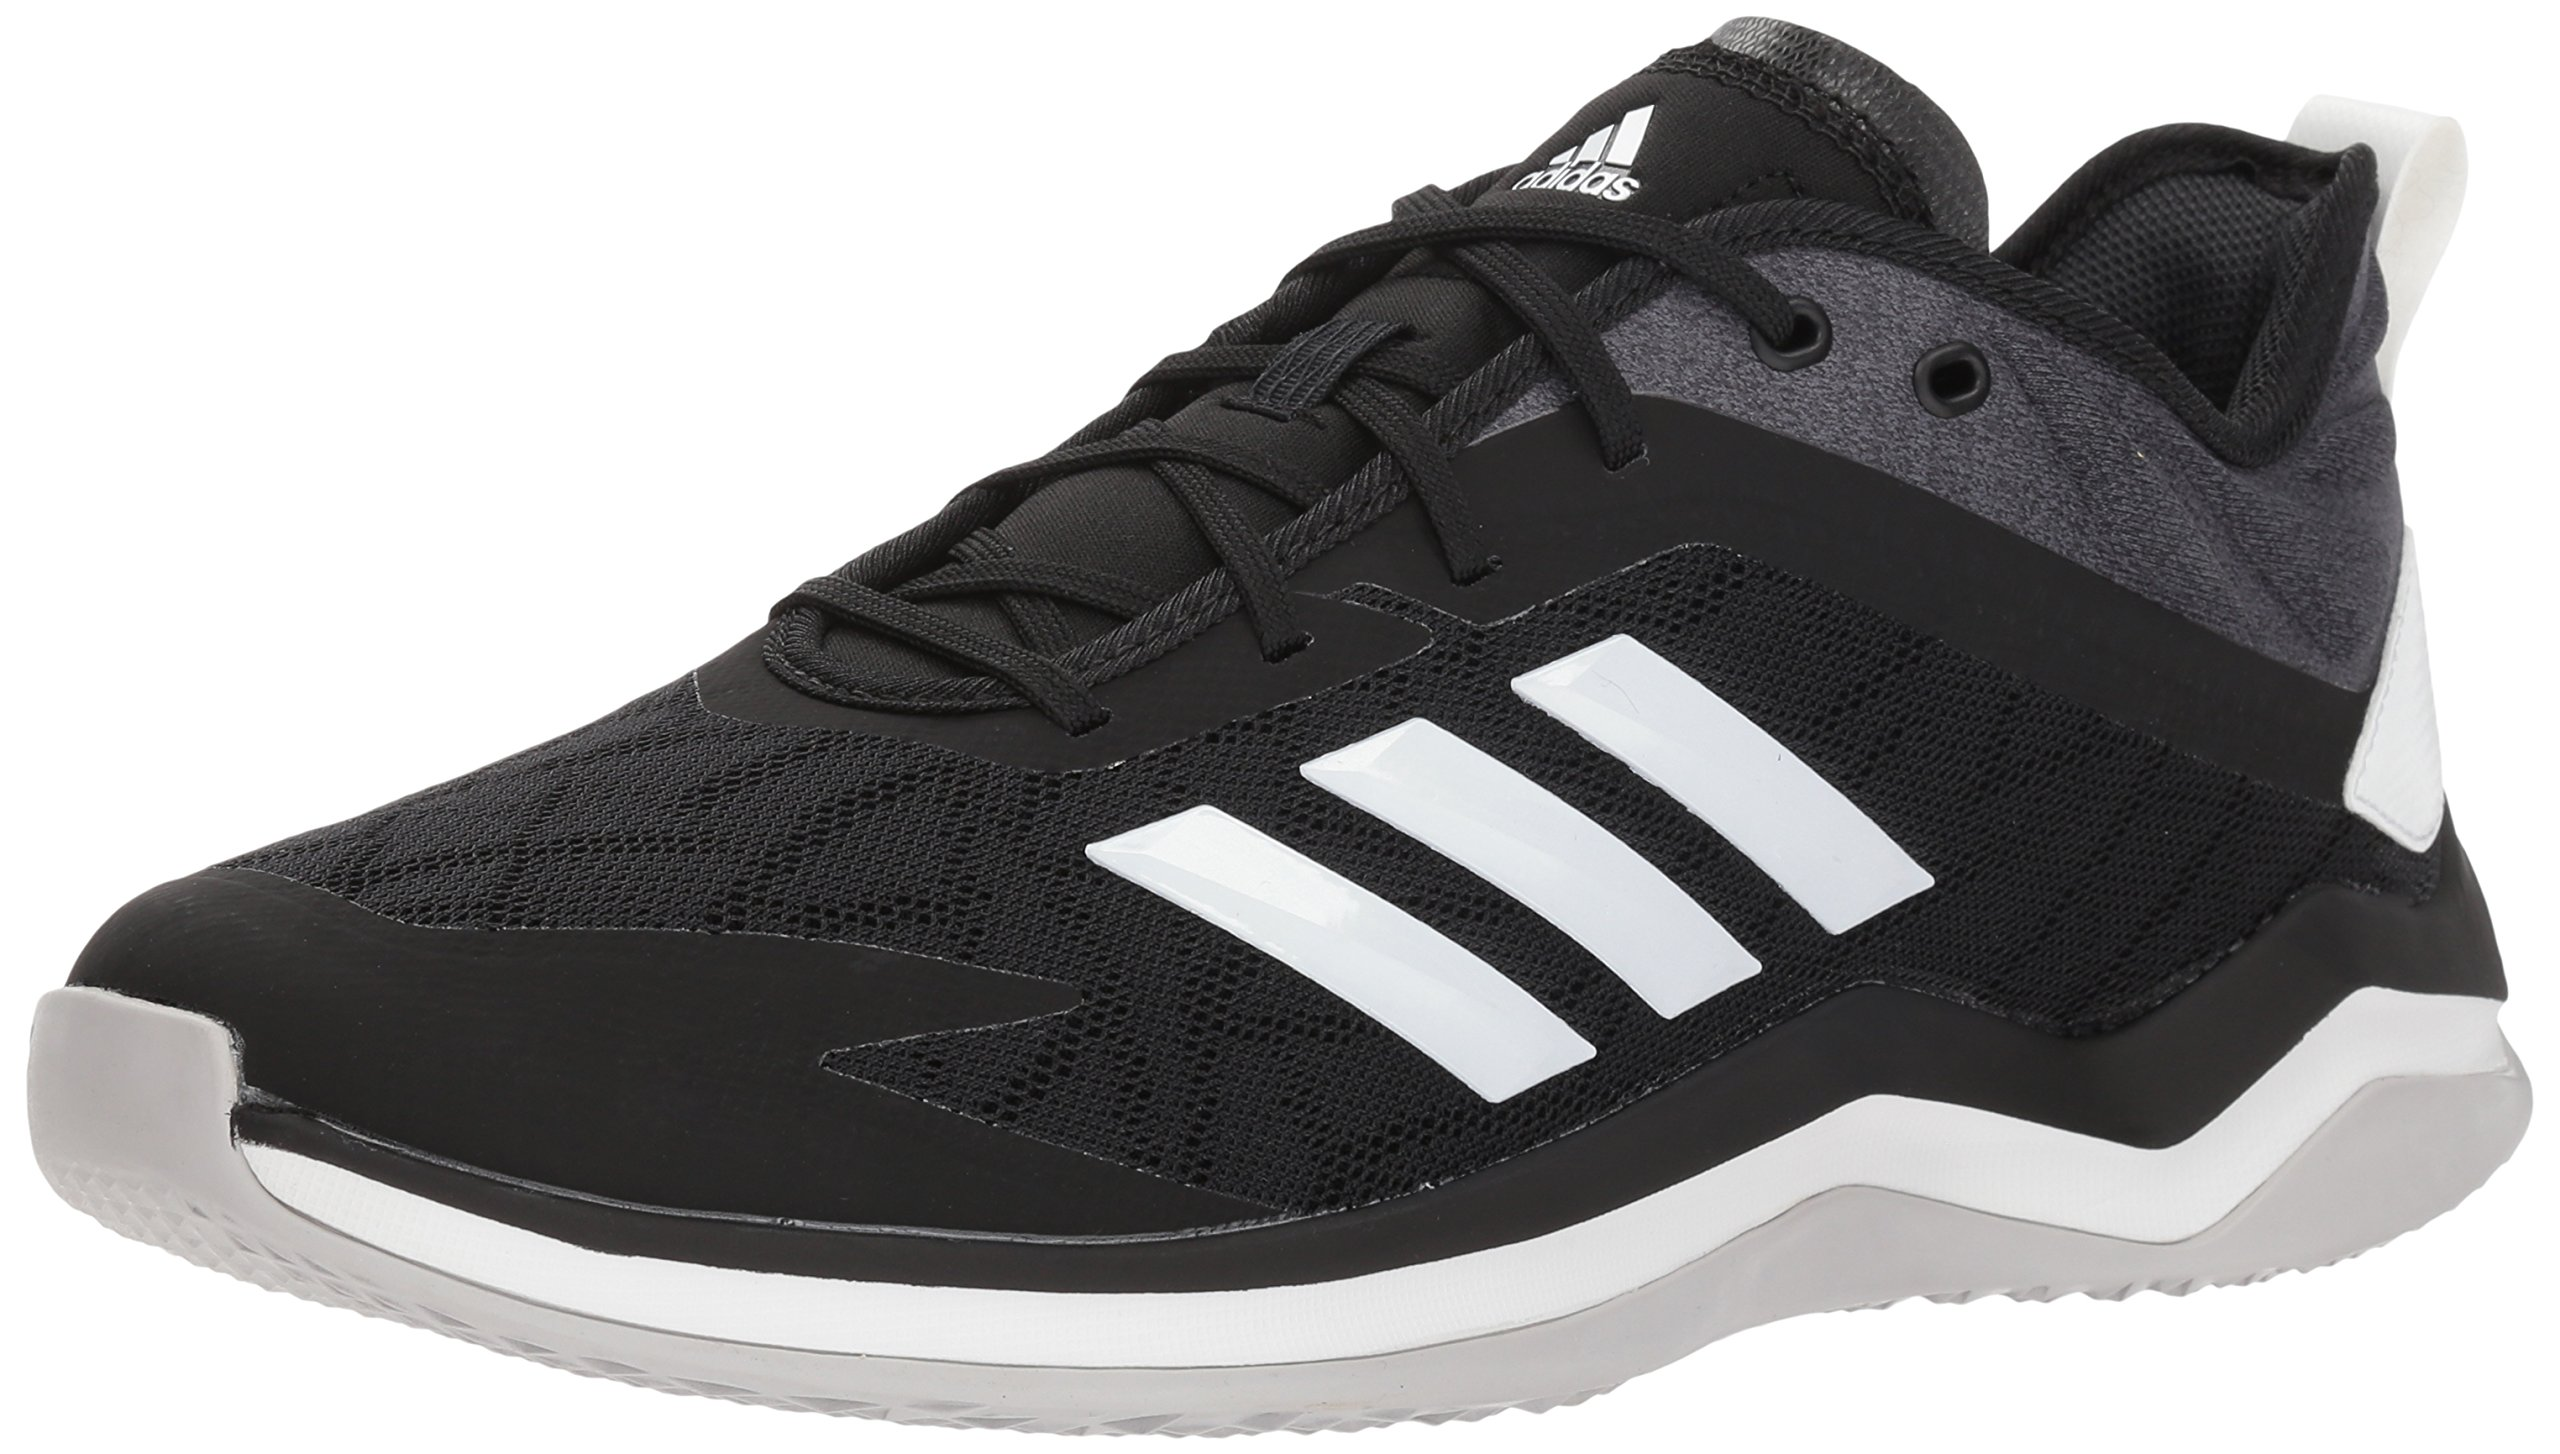 adidas Men's Speed Trainer 4 Baseball Shoe, Black/Crystal White/Carbon, 8 M US